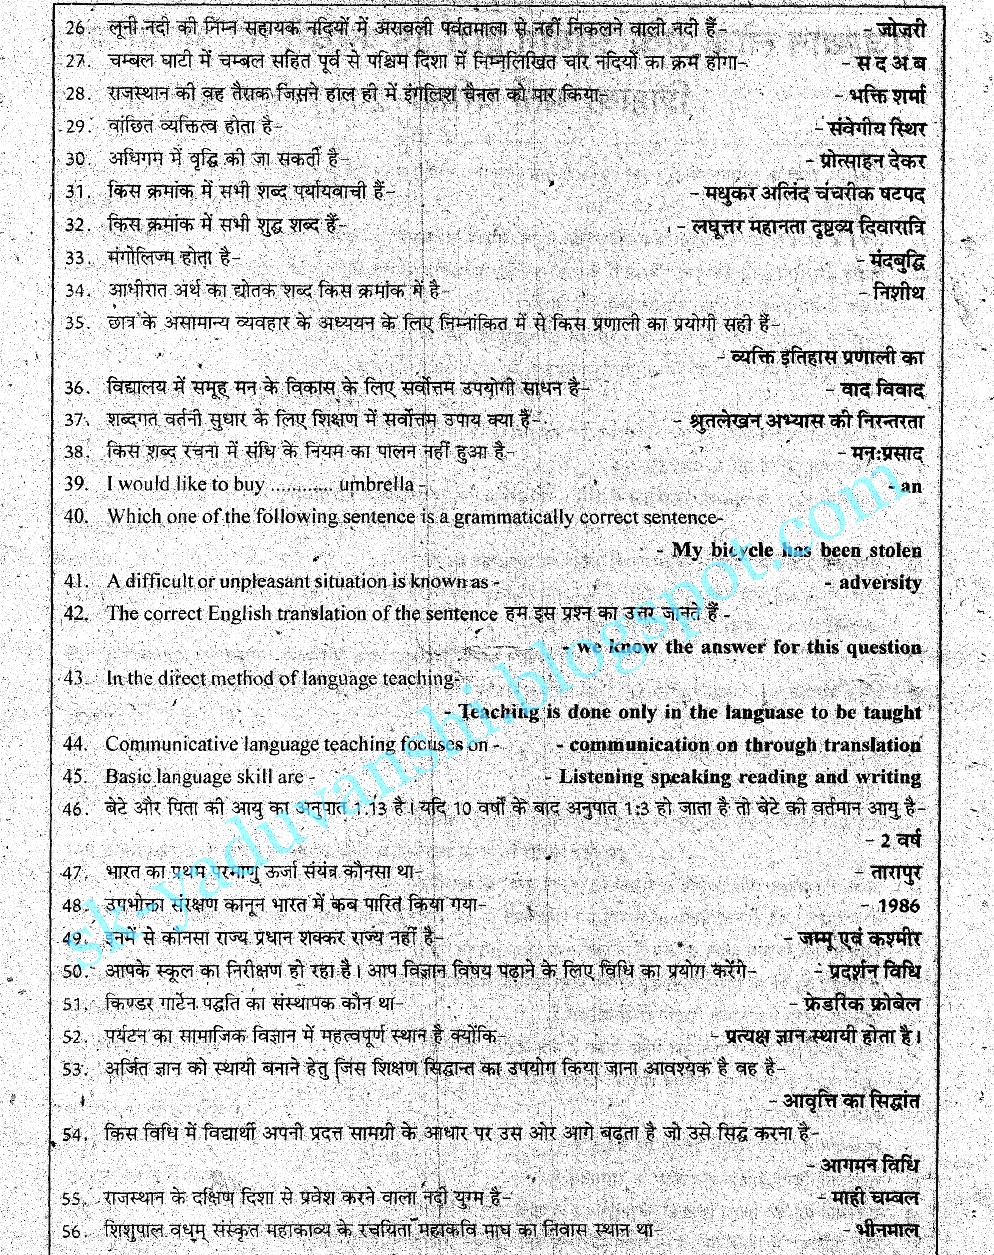 essay on importance of education in life essay on importance of  essay on importance of teachers in our life essay on importance of teachers in our life